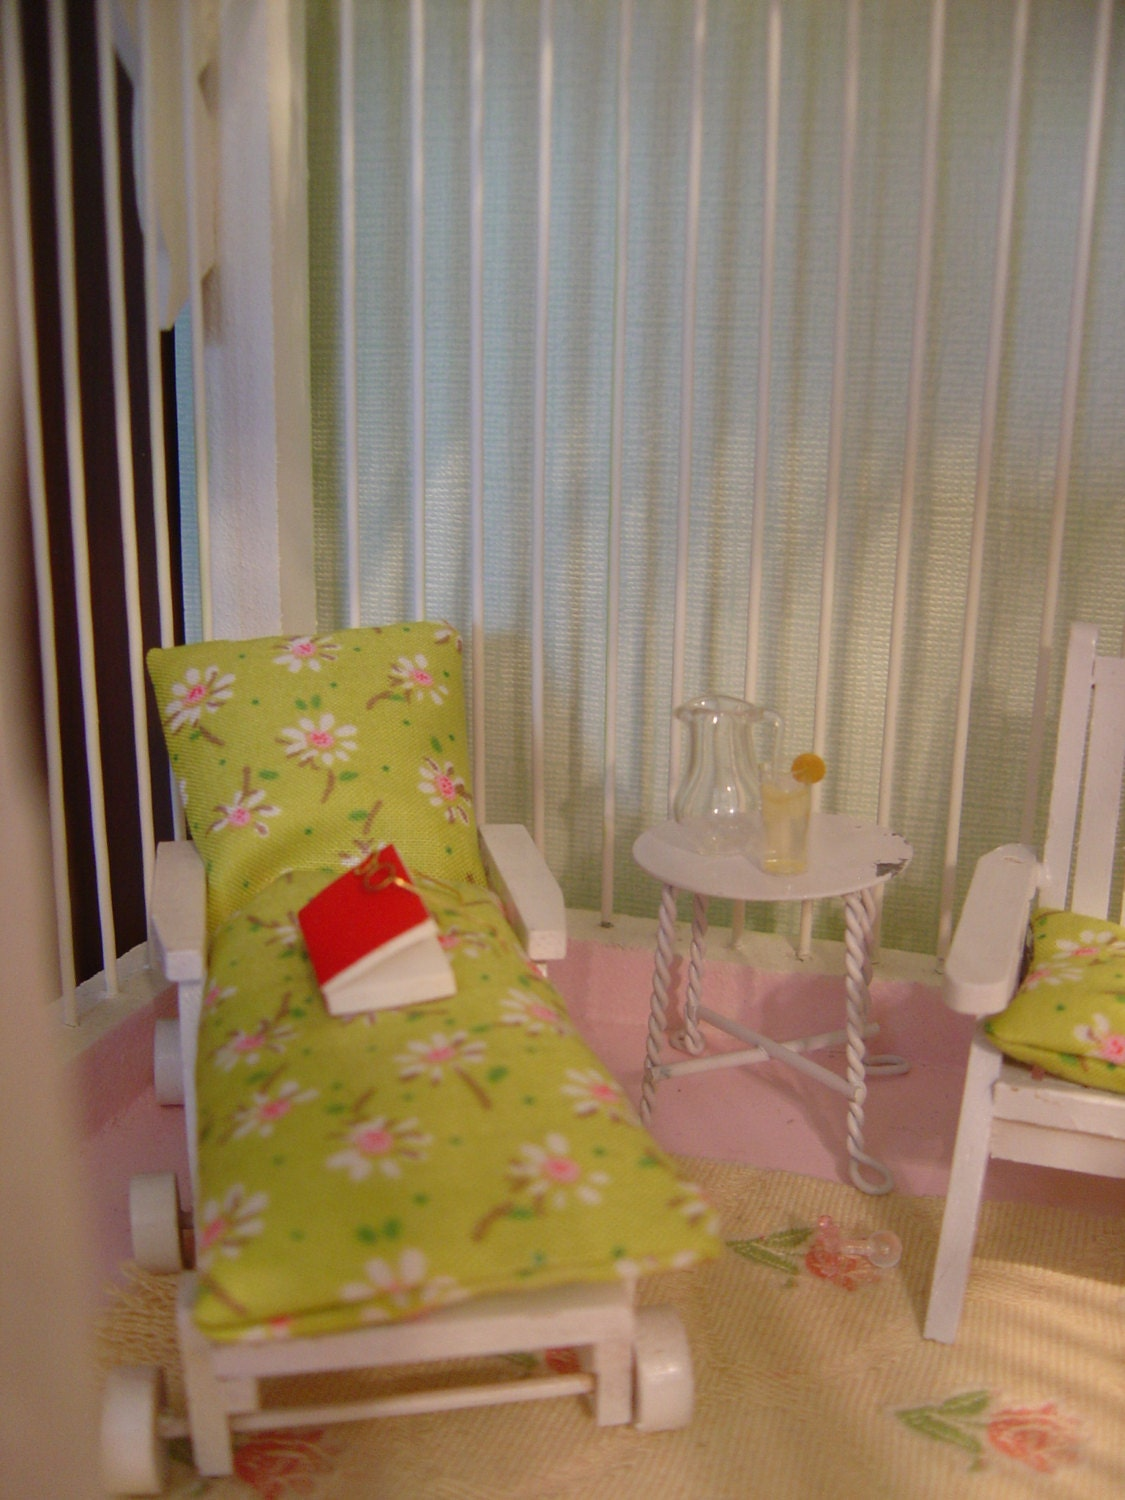 Miniature Children S Bedroom Room Box Diorama: Dollhouse Gazebo / Room Box / Diorama Miniature Reading Room